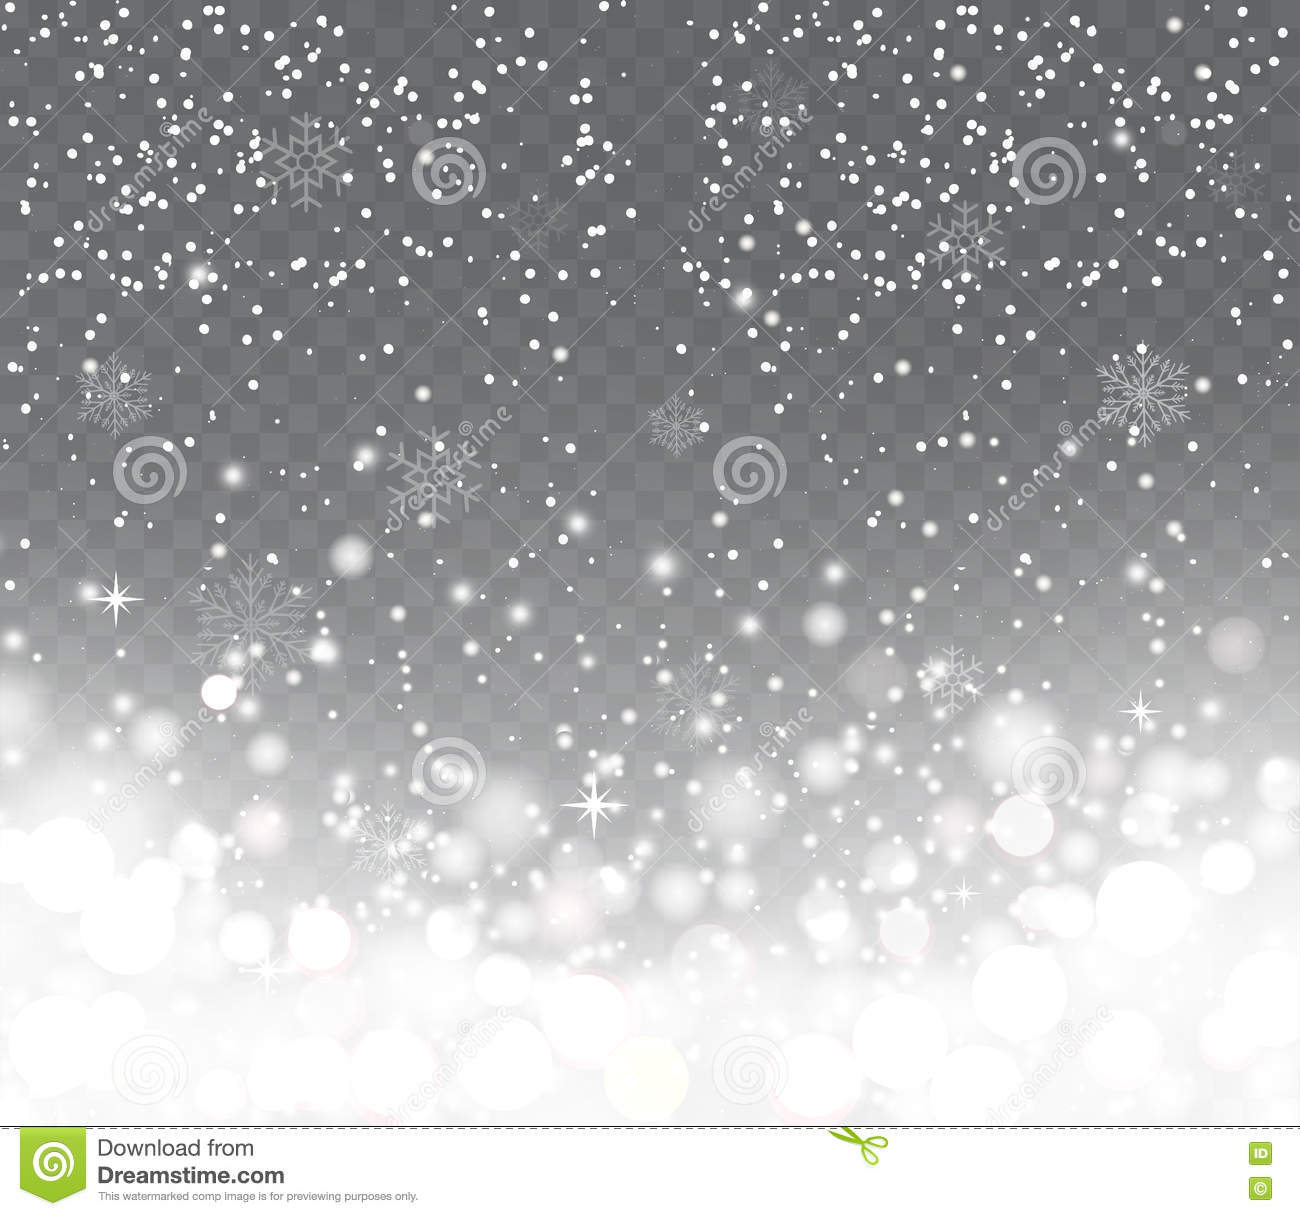 Falling Snow Wallpaper Note 3 Falling Snow With Snowflakes On Transparent Background